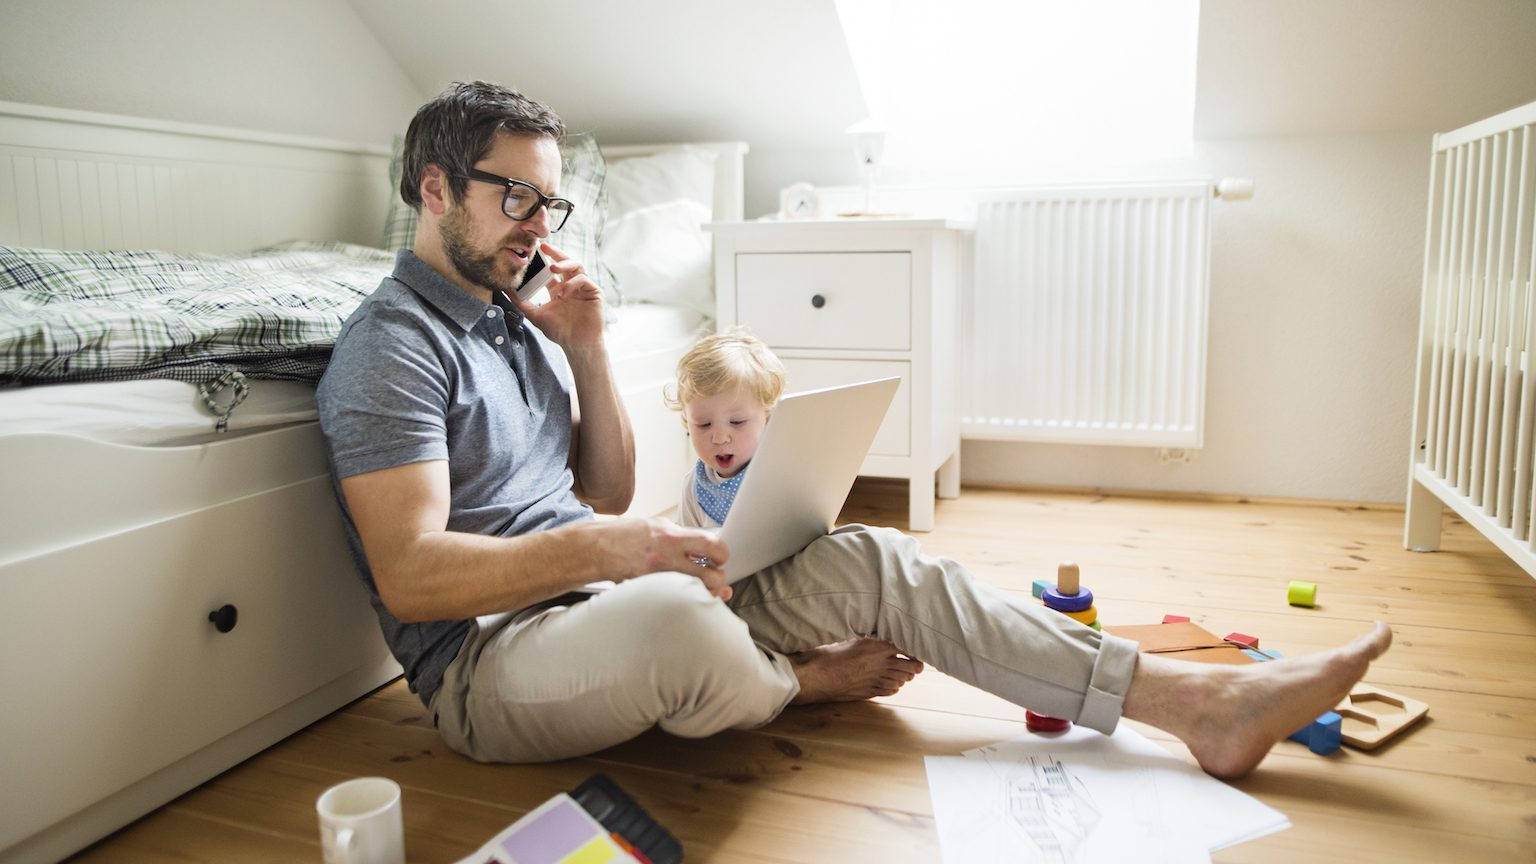 Father with baby looking at laptop and on the phone.